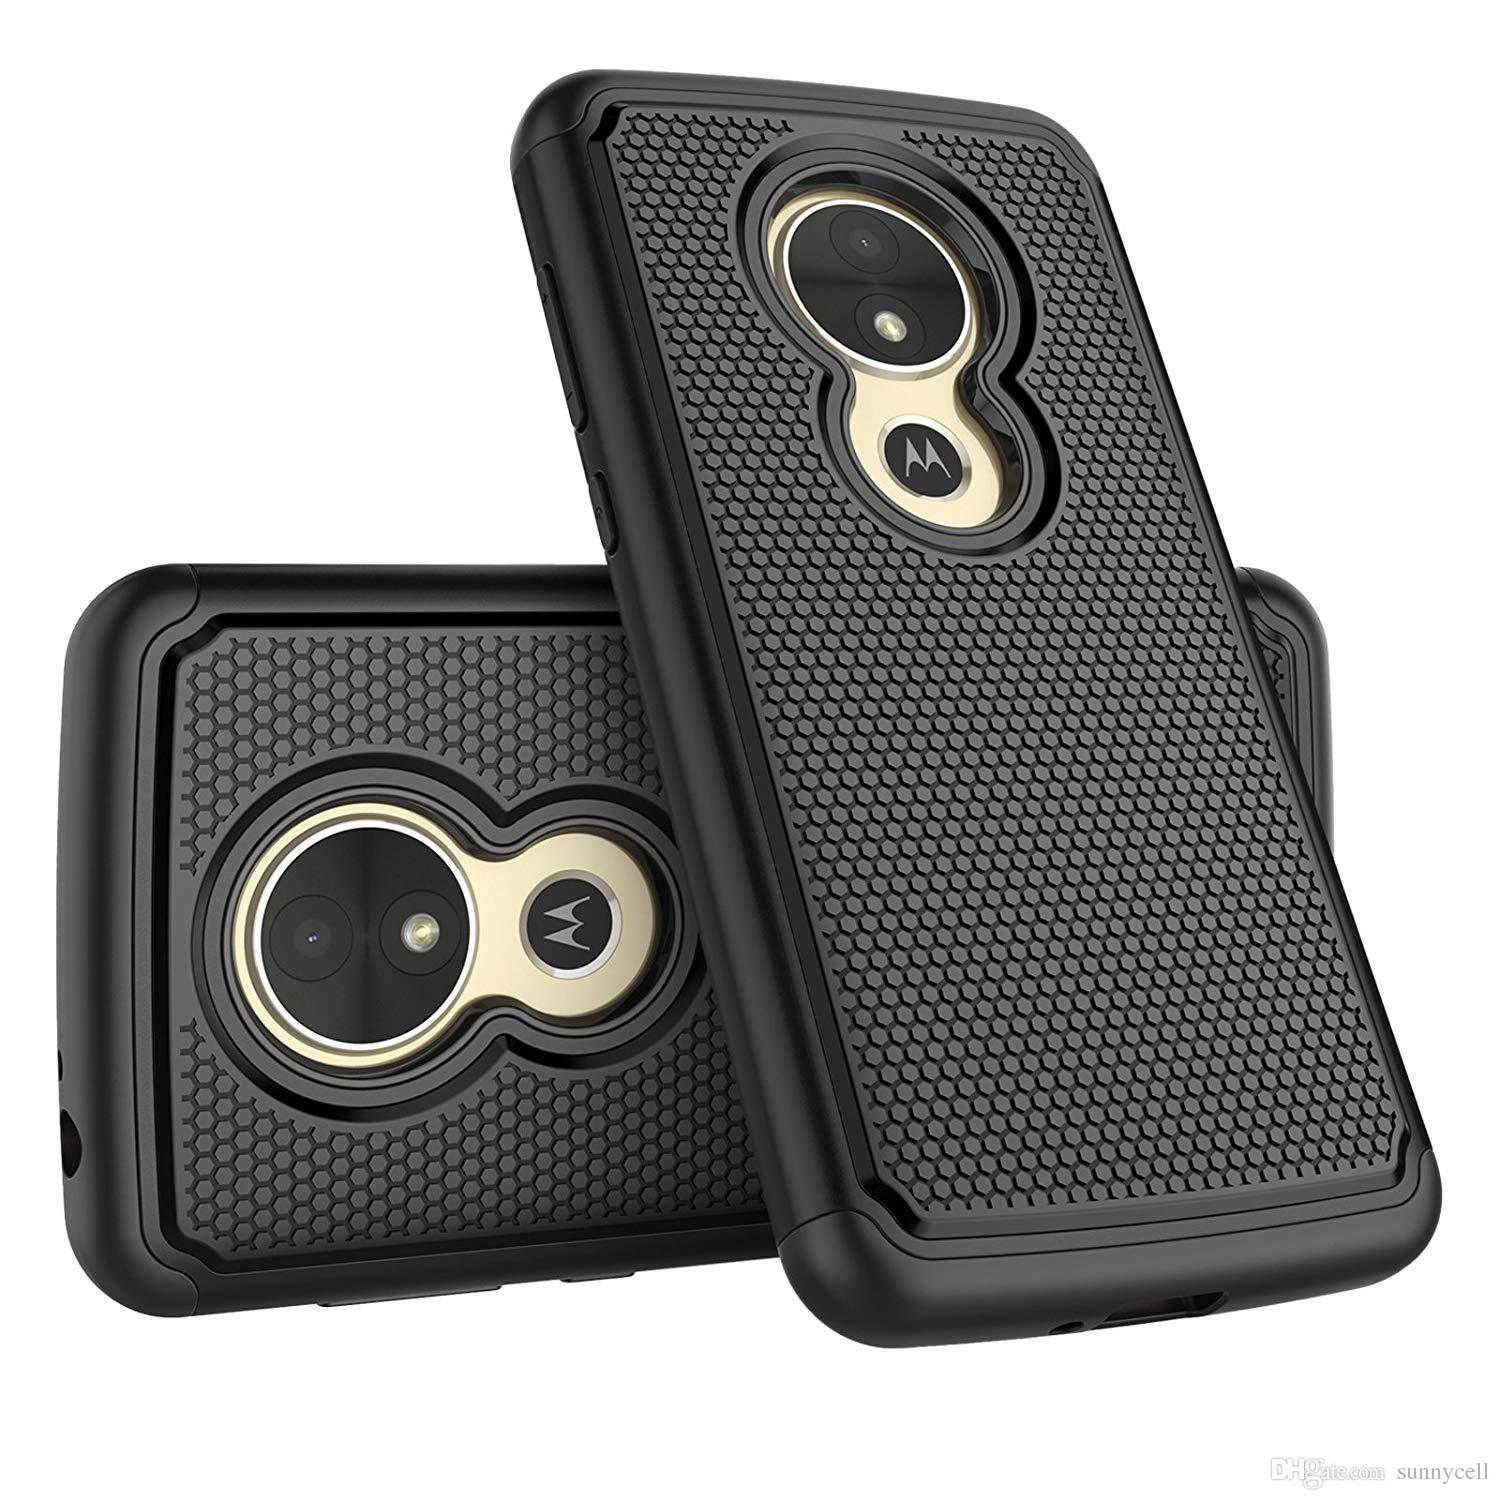 For Motorola Z G4 X5 E5 Play Droid Turbo Maxx 2 Shock Absorbing Best Impact  Bumper Plastic Outer Rubber Silicone Inner Protective Cover Case Cell